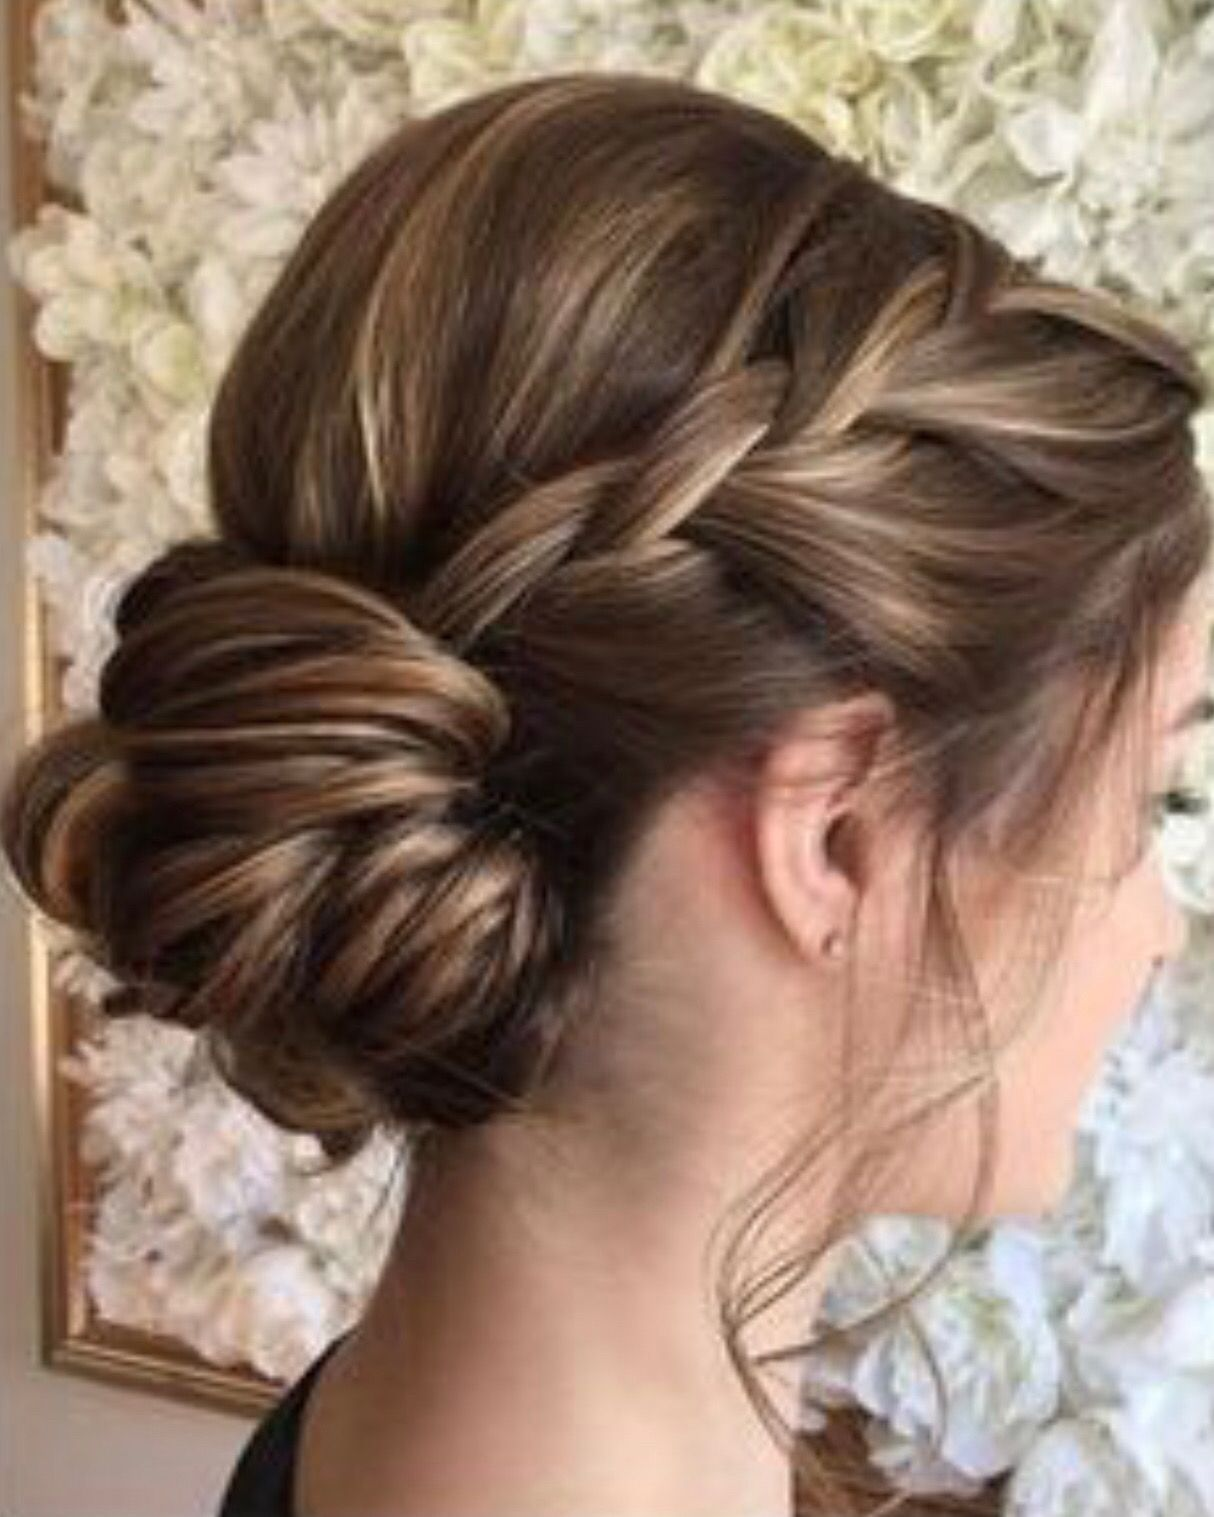 17 Statement Young Bridesmaid Hairstyles Hairdos Junior Bridesmaid Hair Medium Hair Styles Medium Length Hair Styles